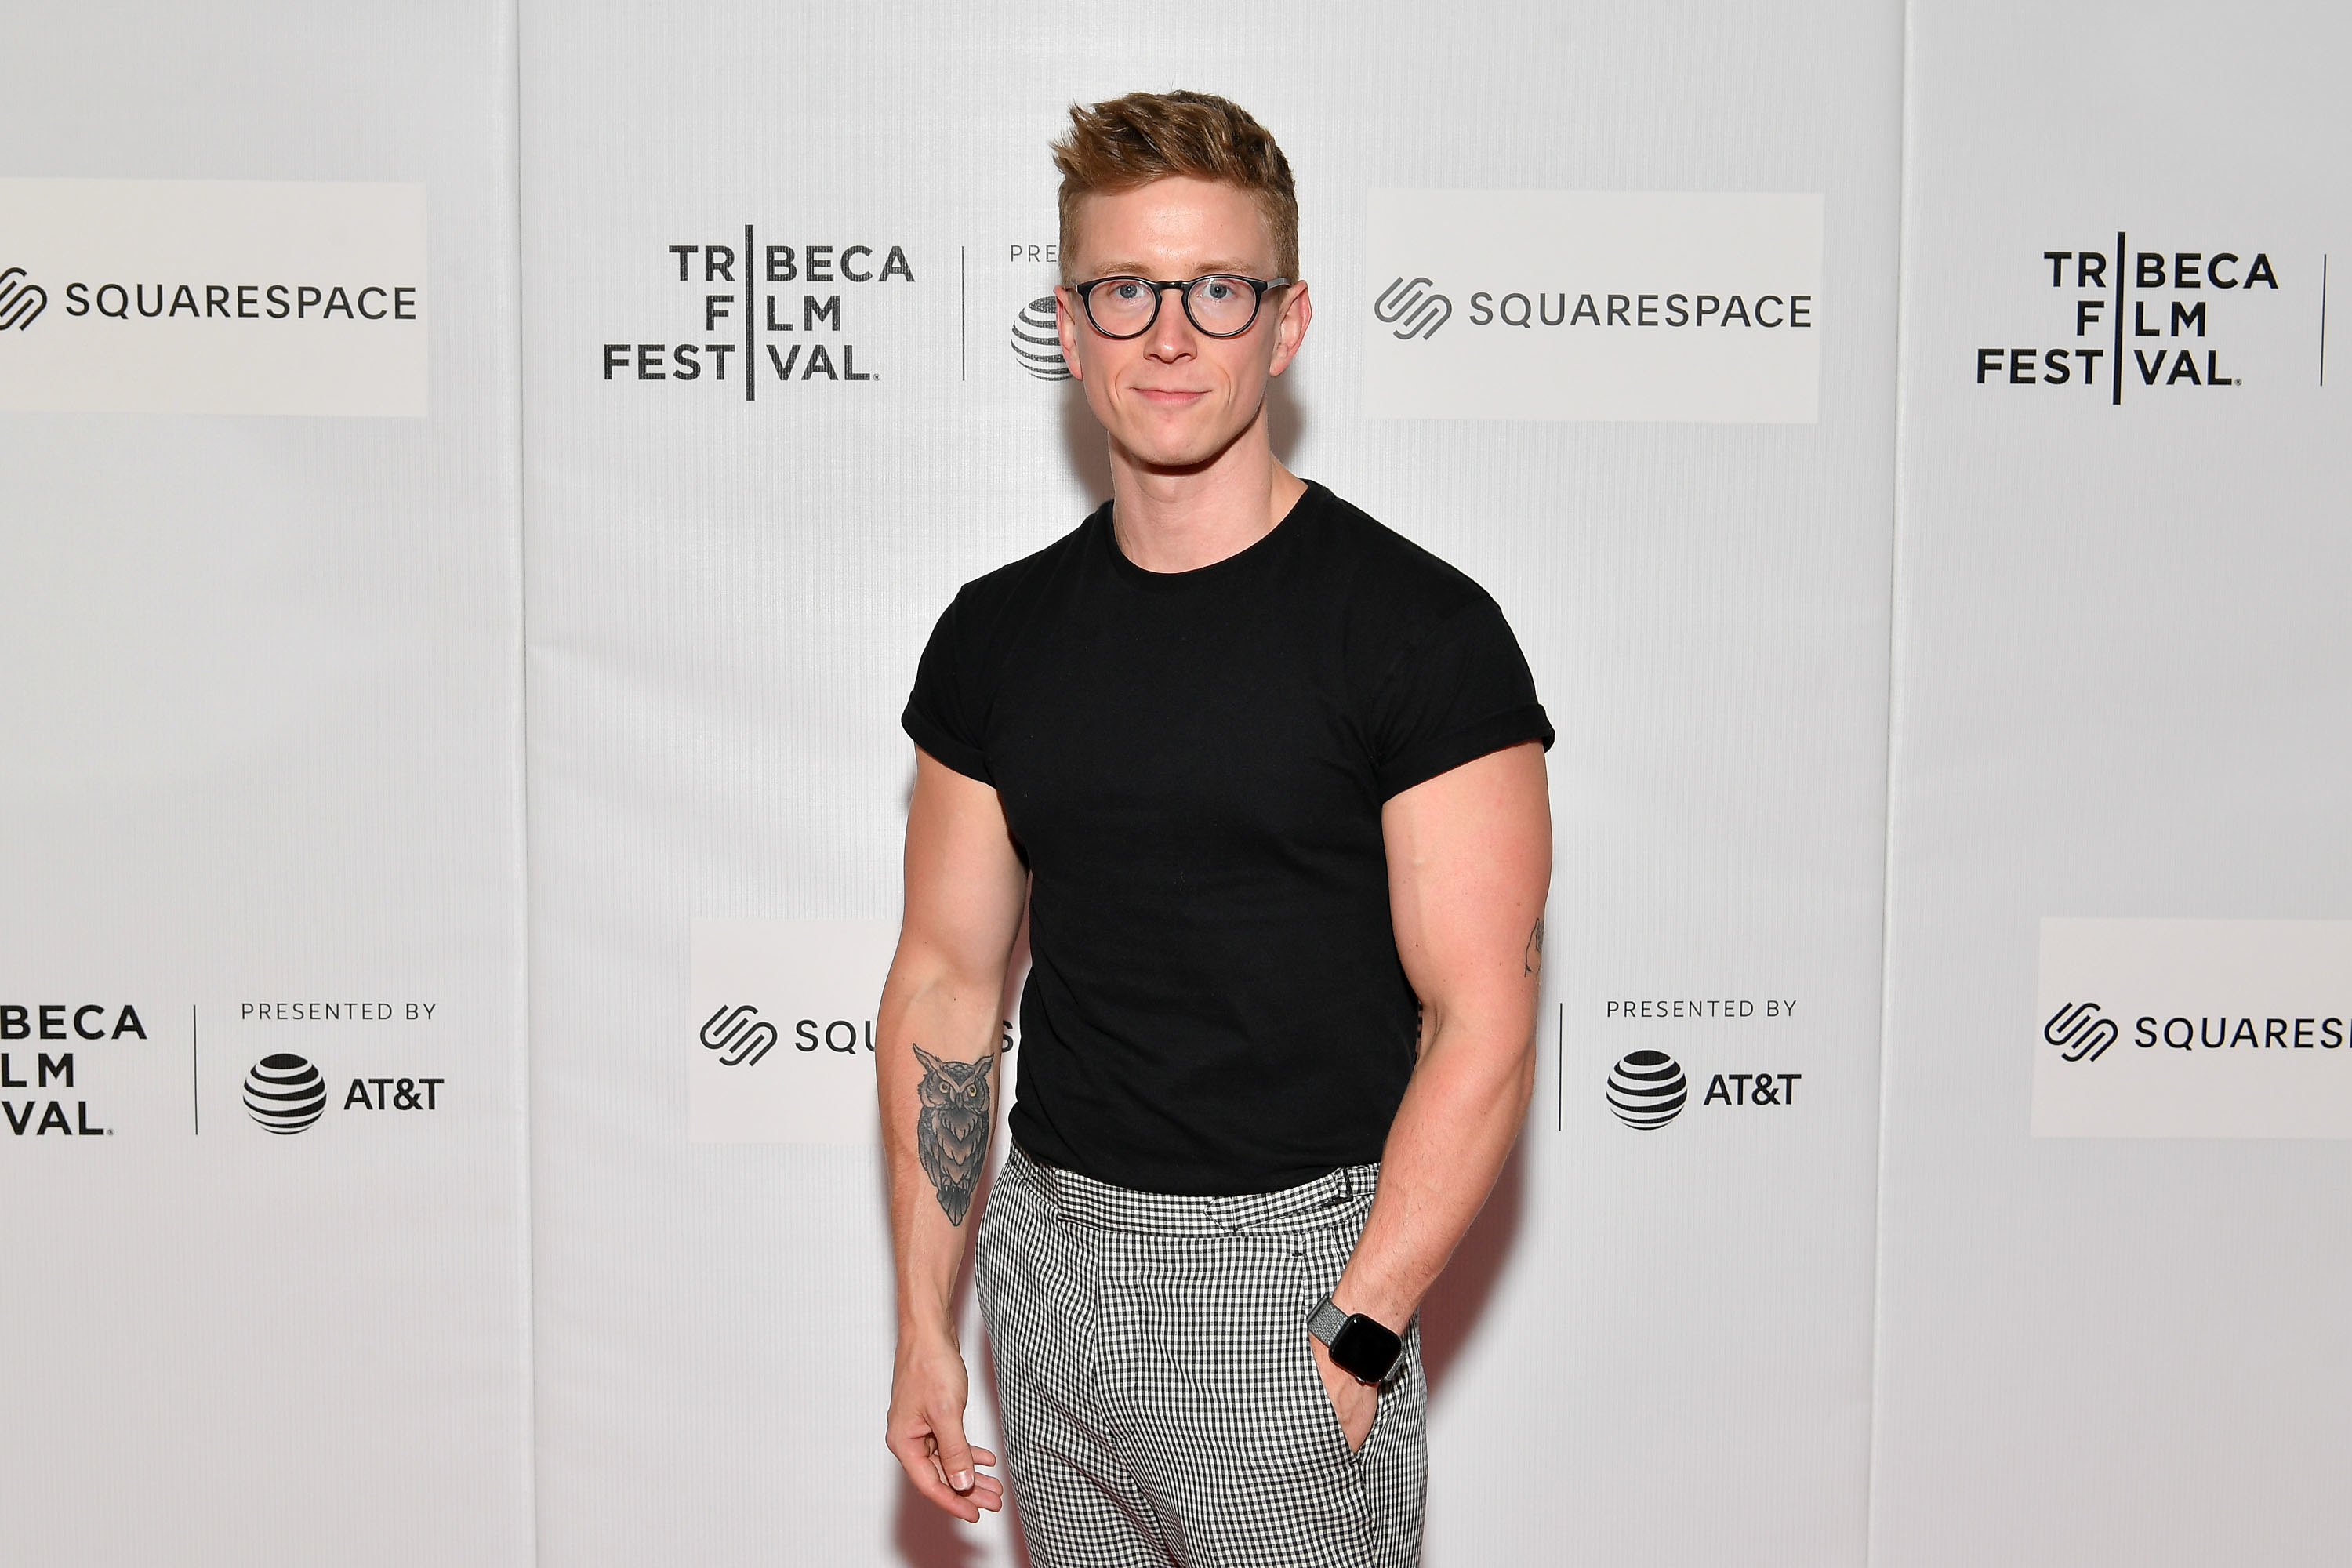 """Tyler Oakley attends the """"Gay Chorus Deep South"""" screening during the 2019 Tribeca Film Festival at Spring Studios on April 29, 2019 in New York City"""